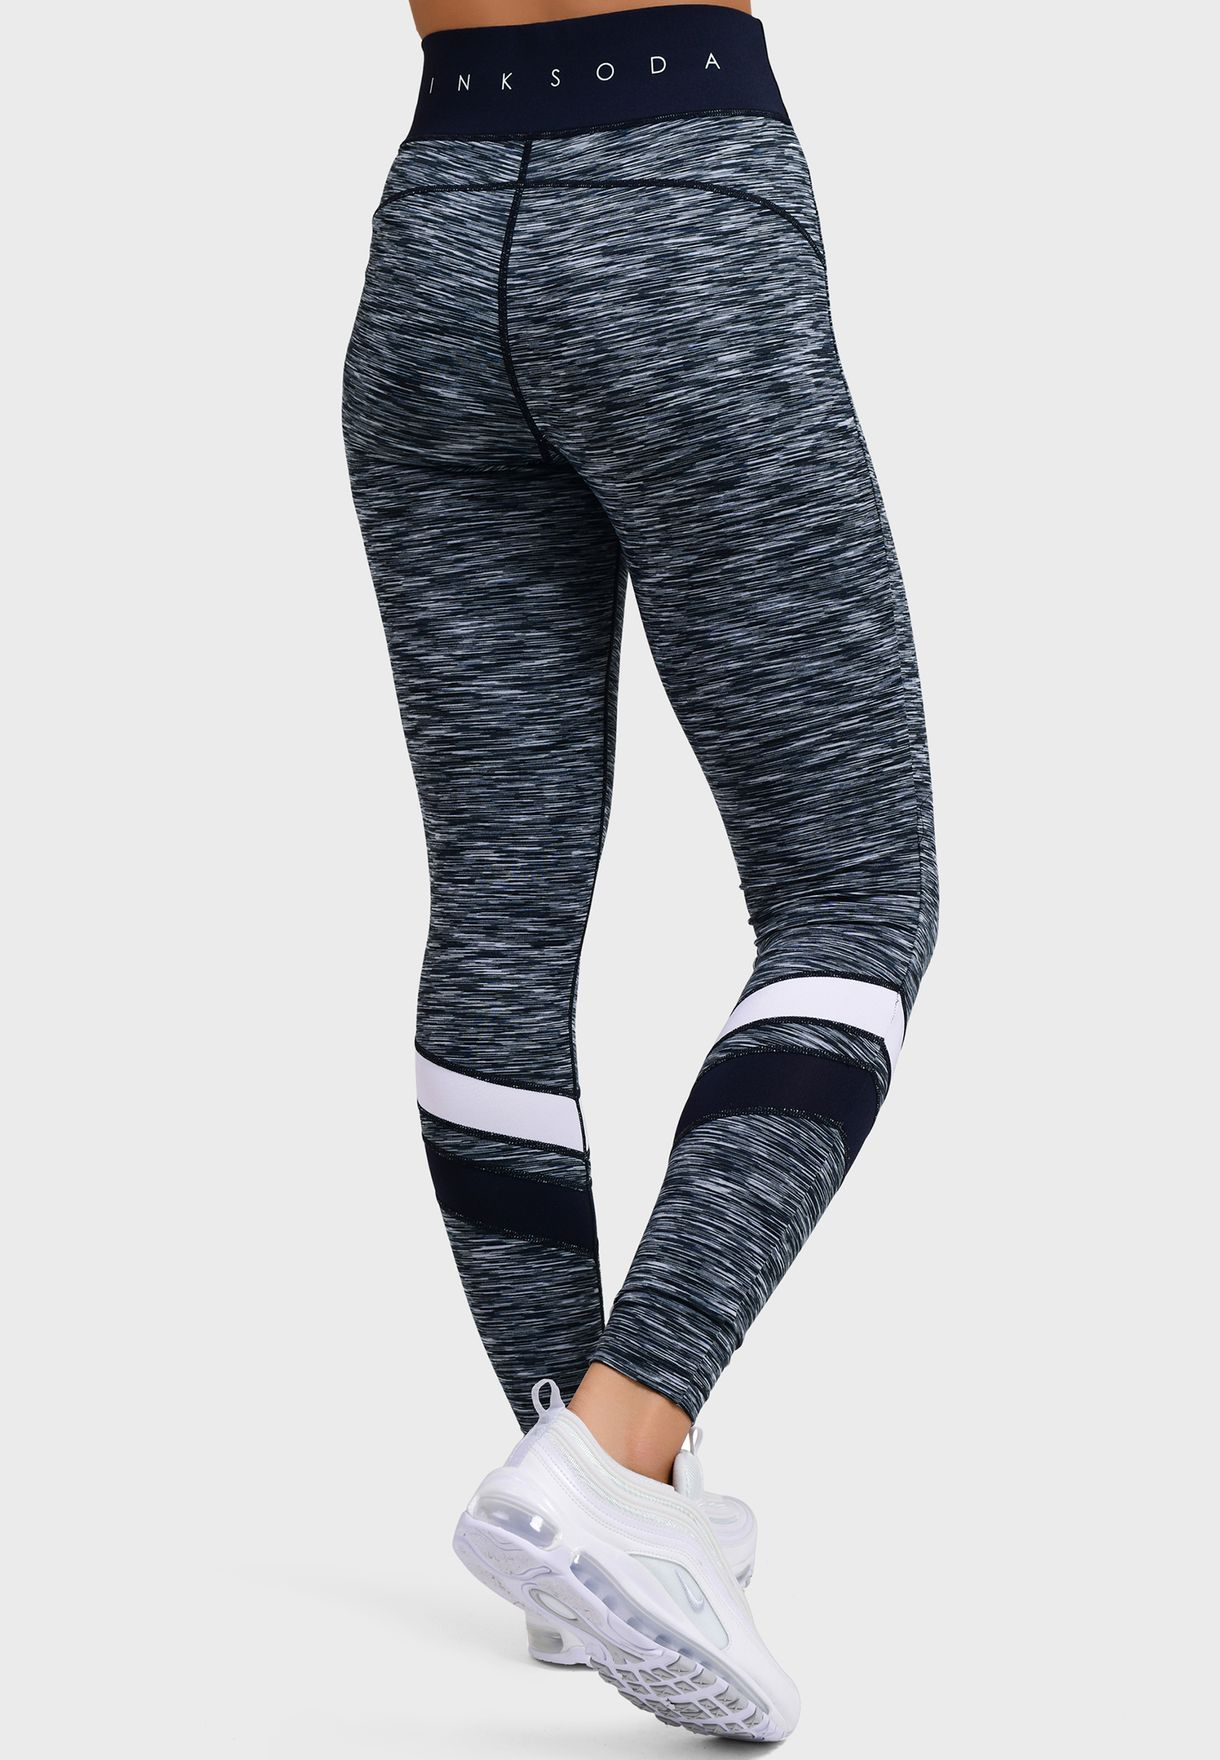 Reign Tights